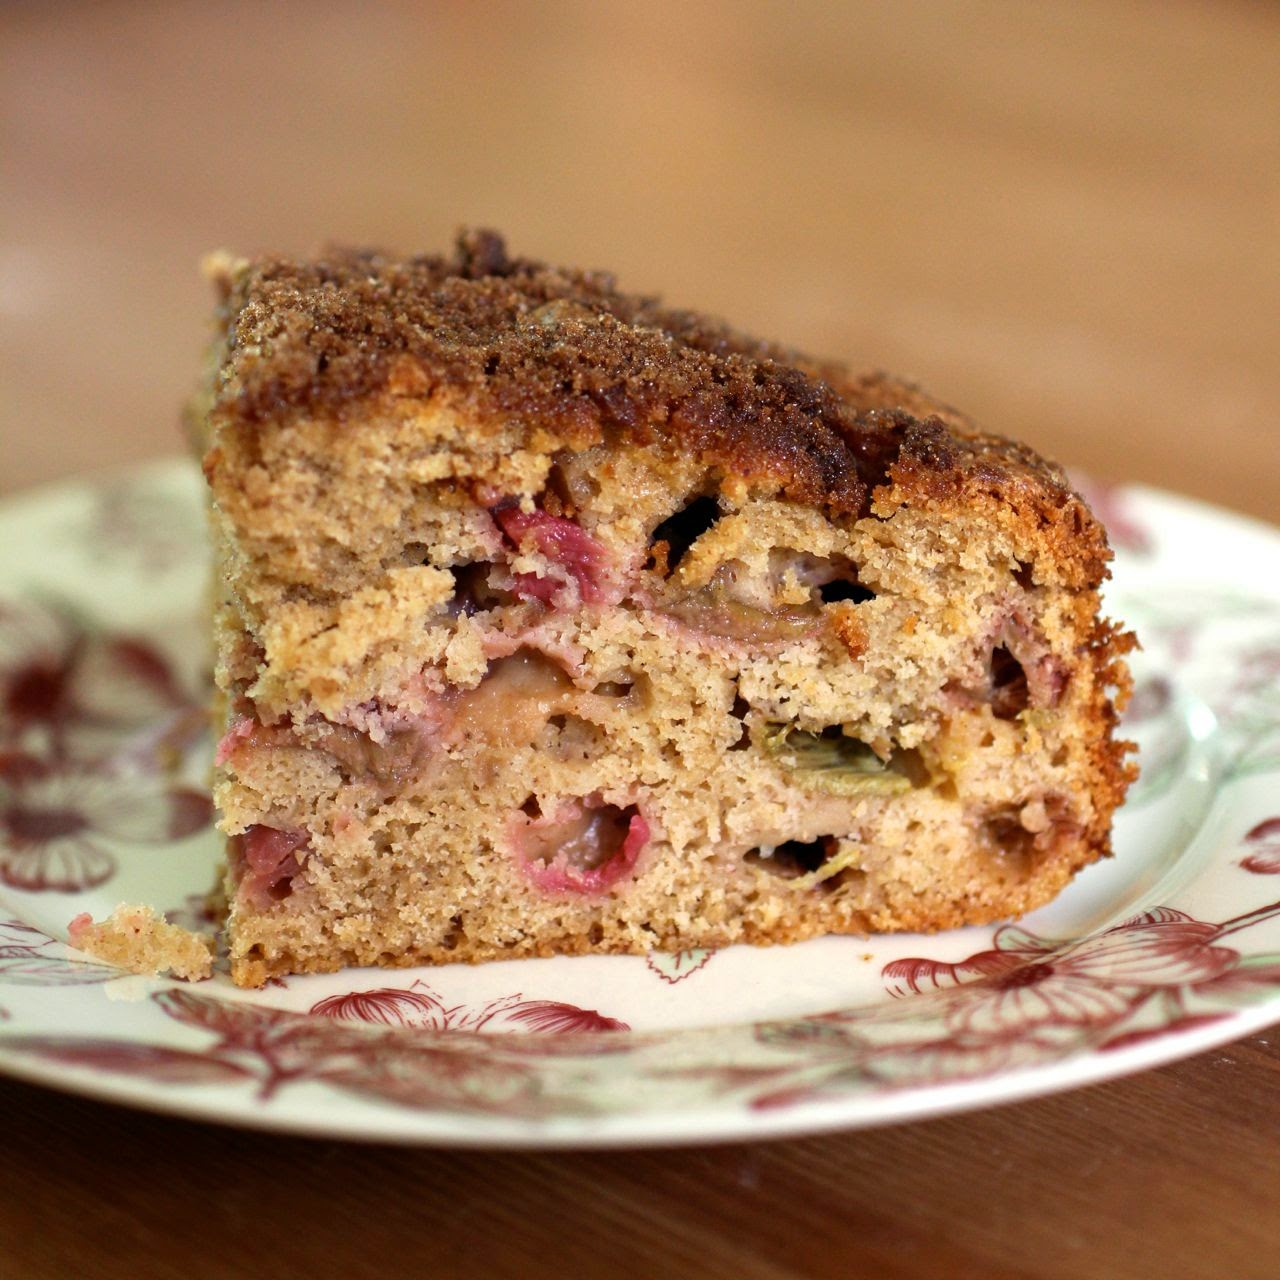 Rhubarb cake, random notes, and long service leave